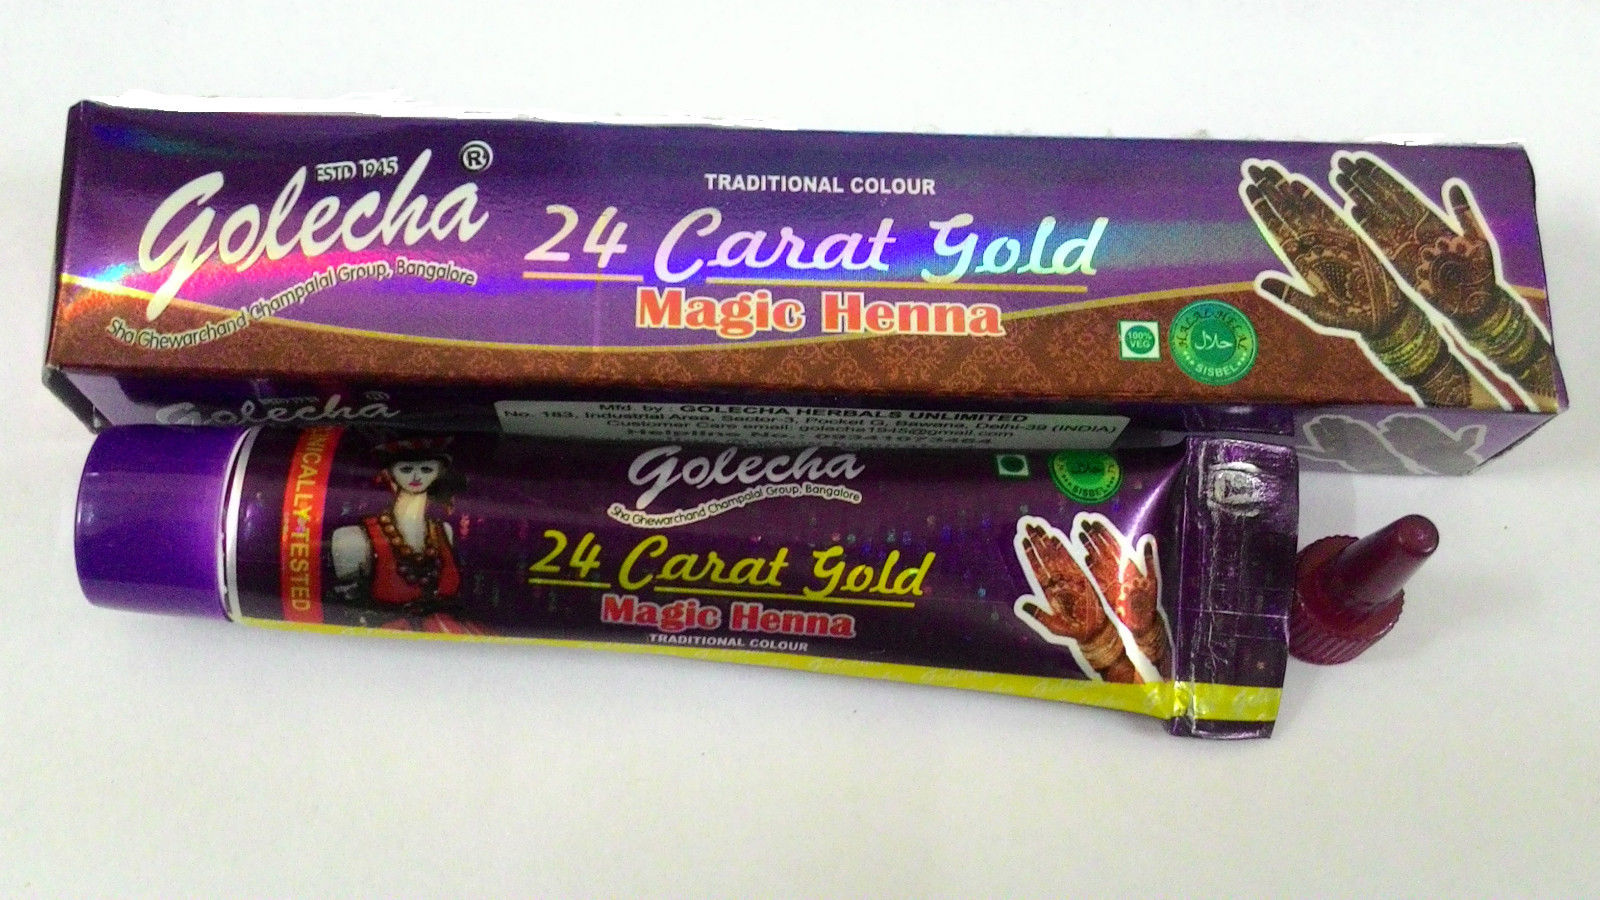 buy Golecha 24 Carat Gold Magic Henna Purple Tubes (Pack of 12) in UK & USA